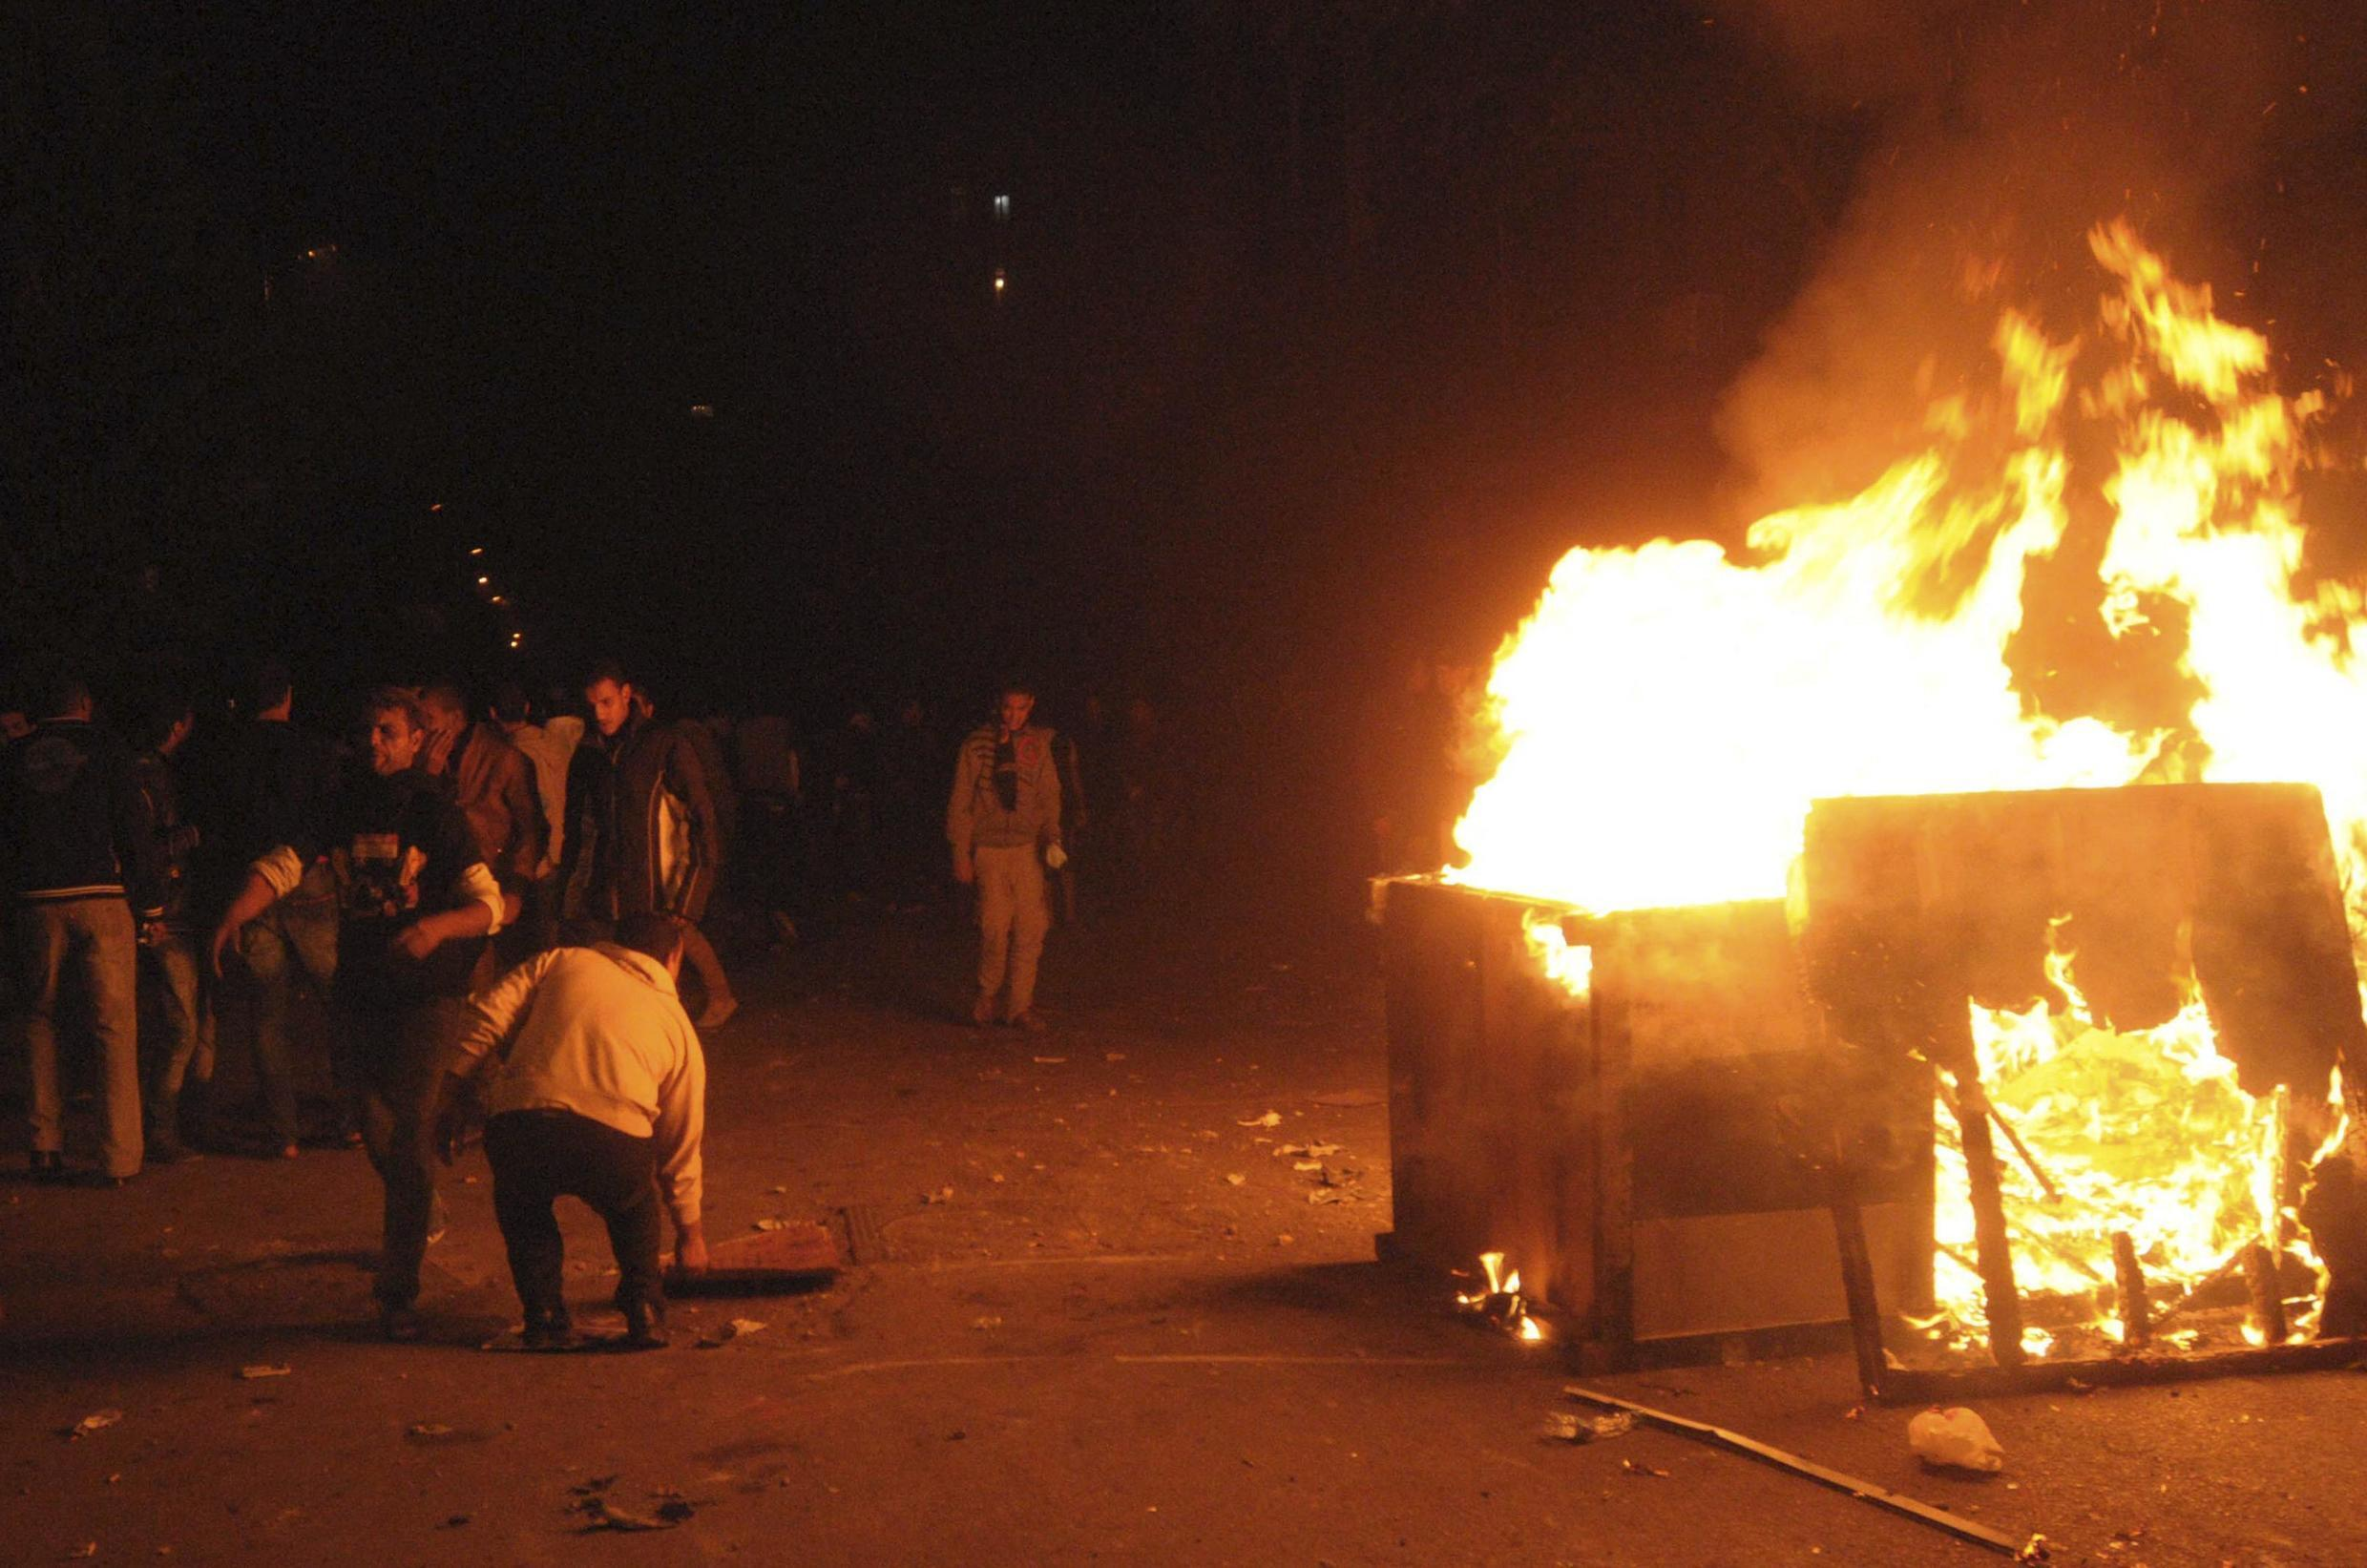 Demonstrators burn banners and police boxes on Tahrir Square on Saturday night